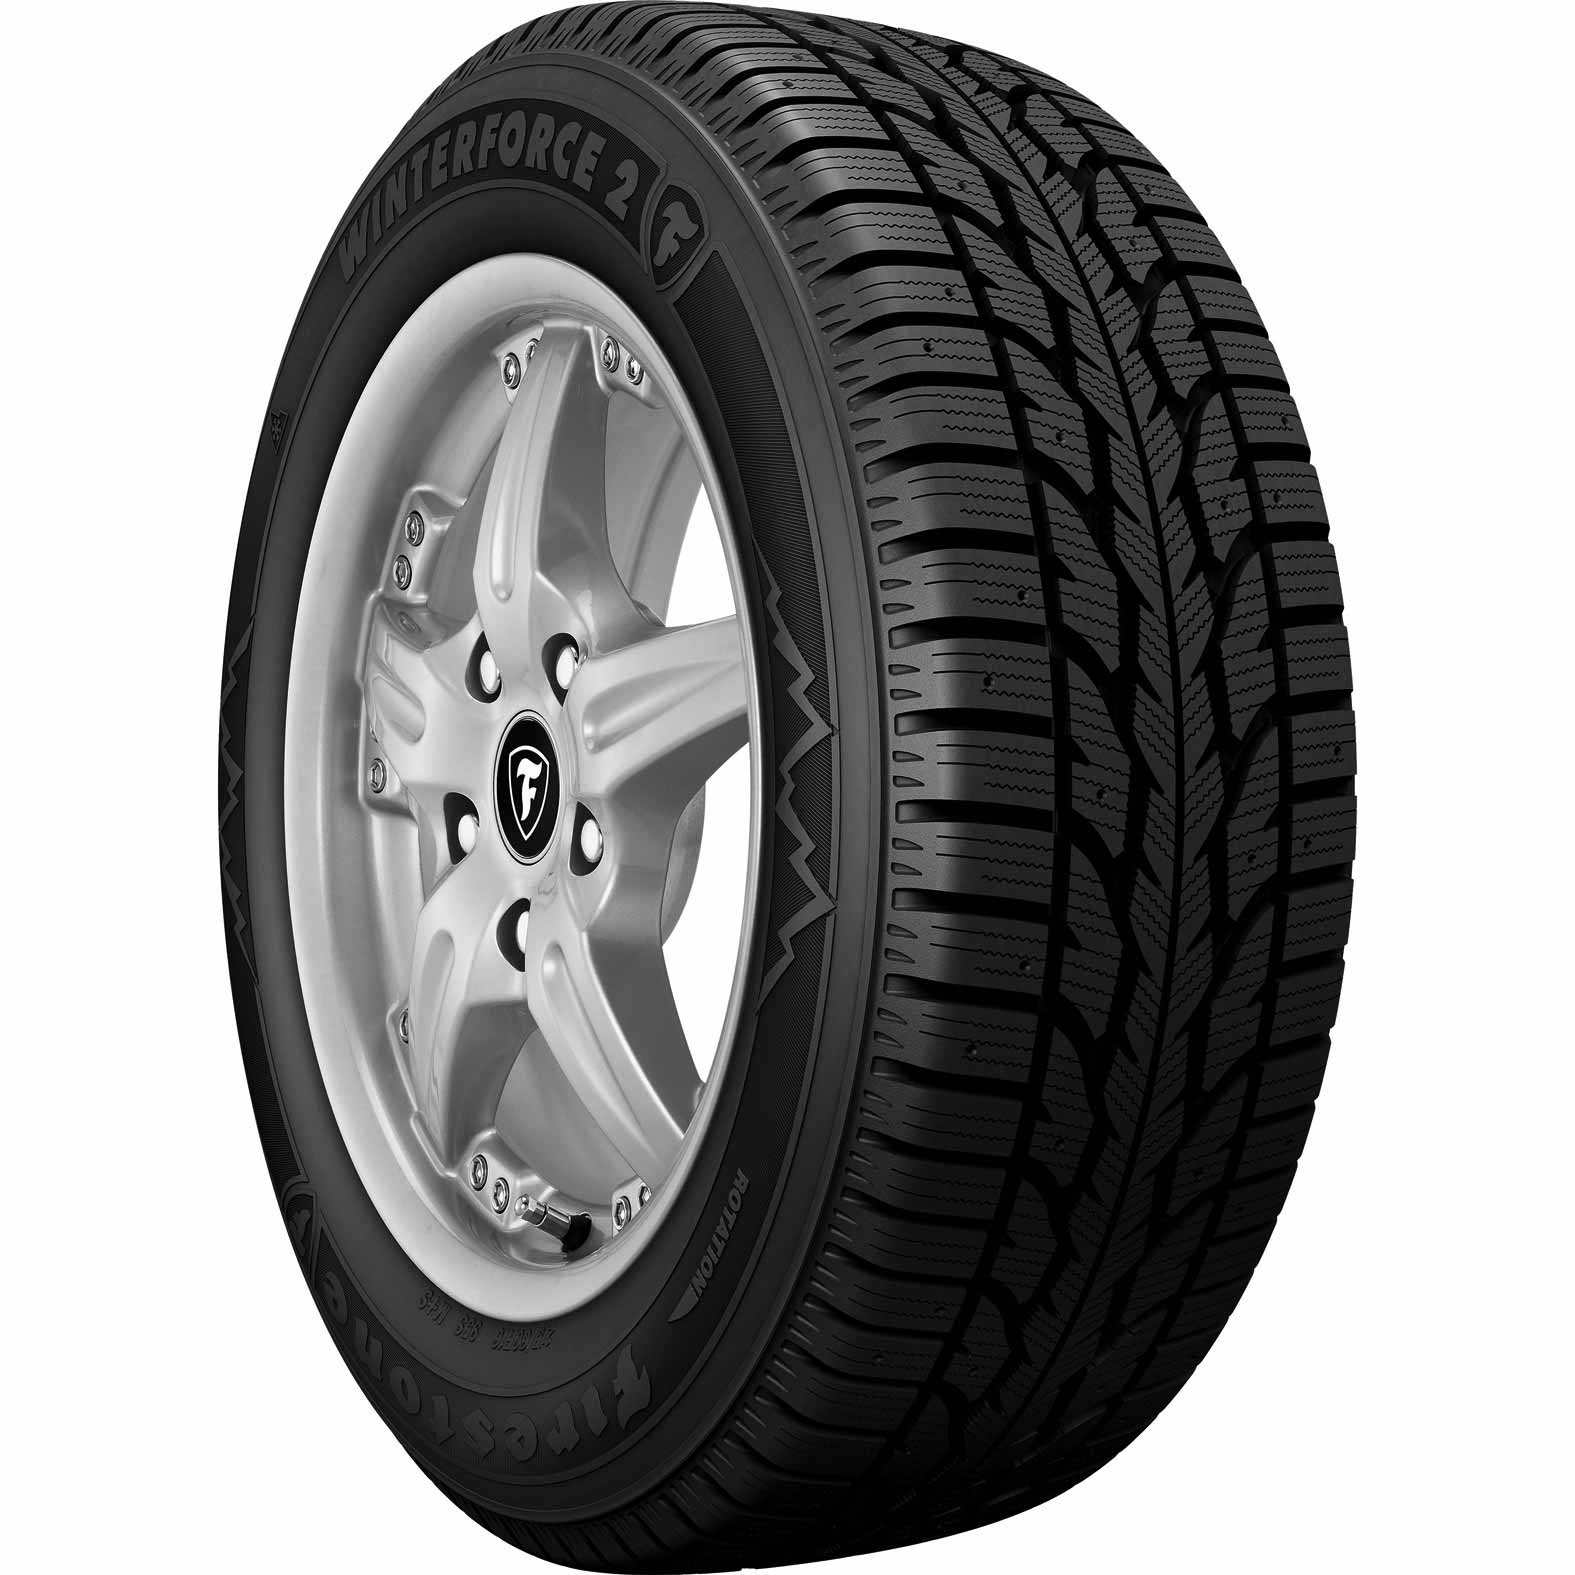 Firestone Winterforce 2 tire - angle